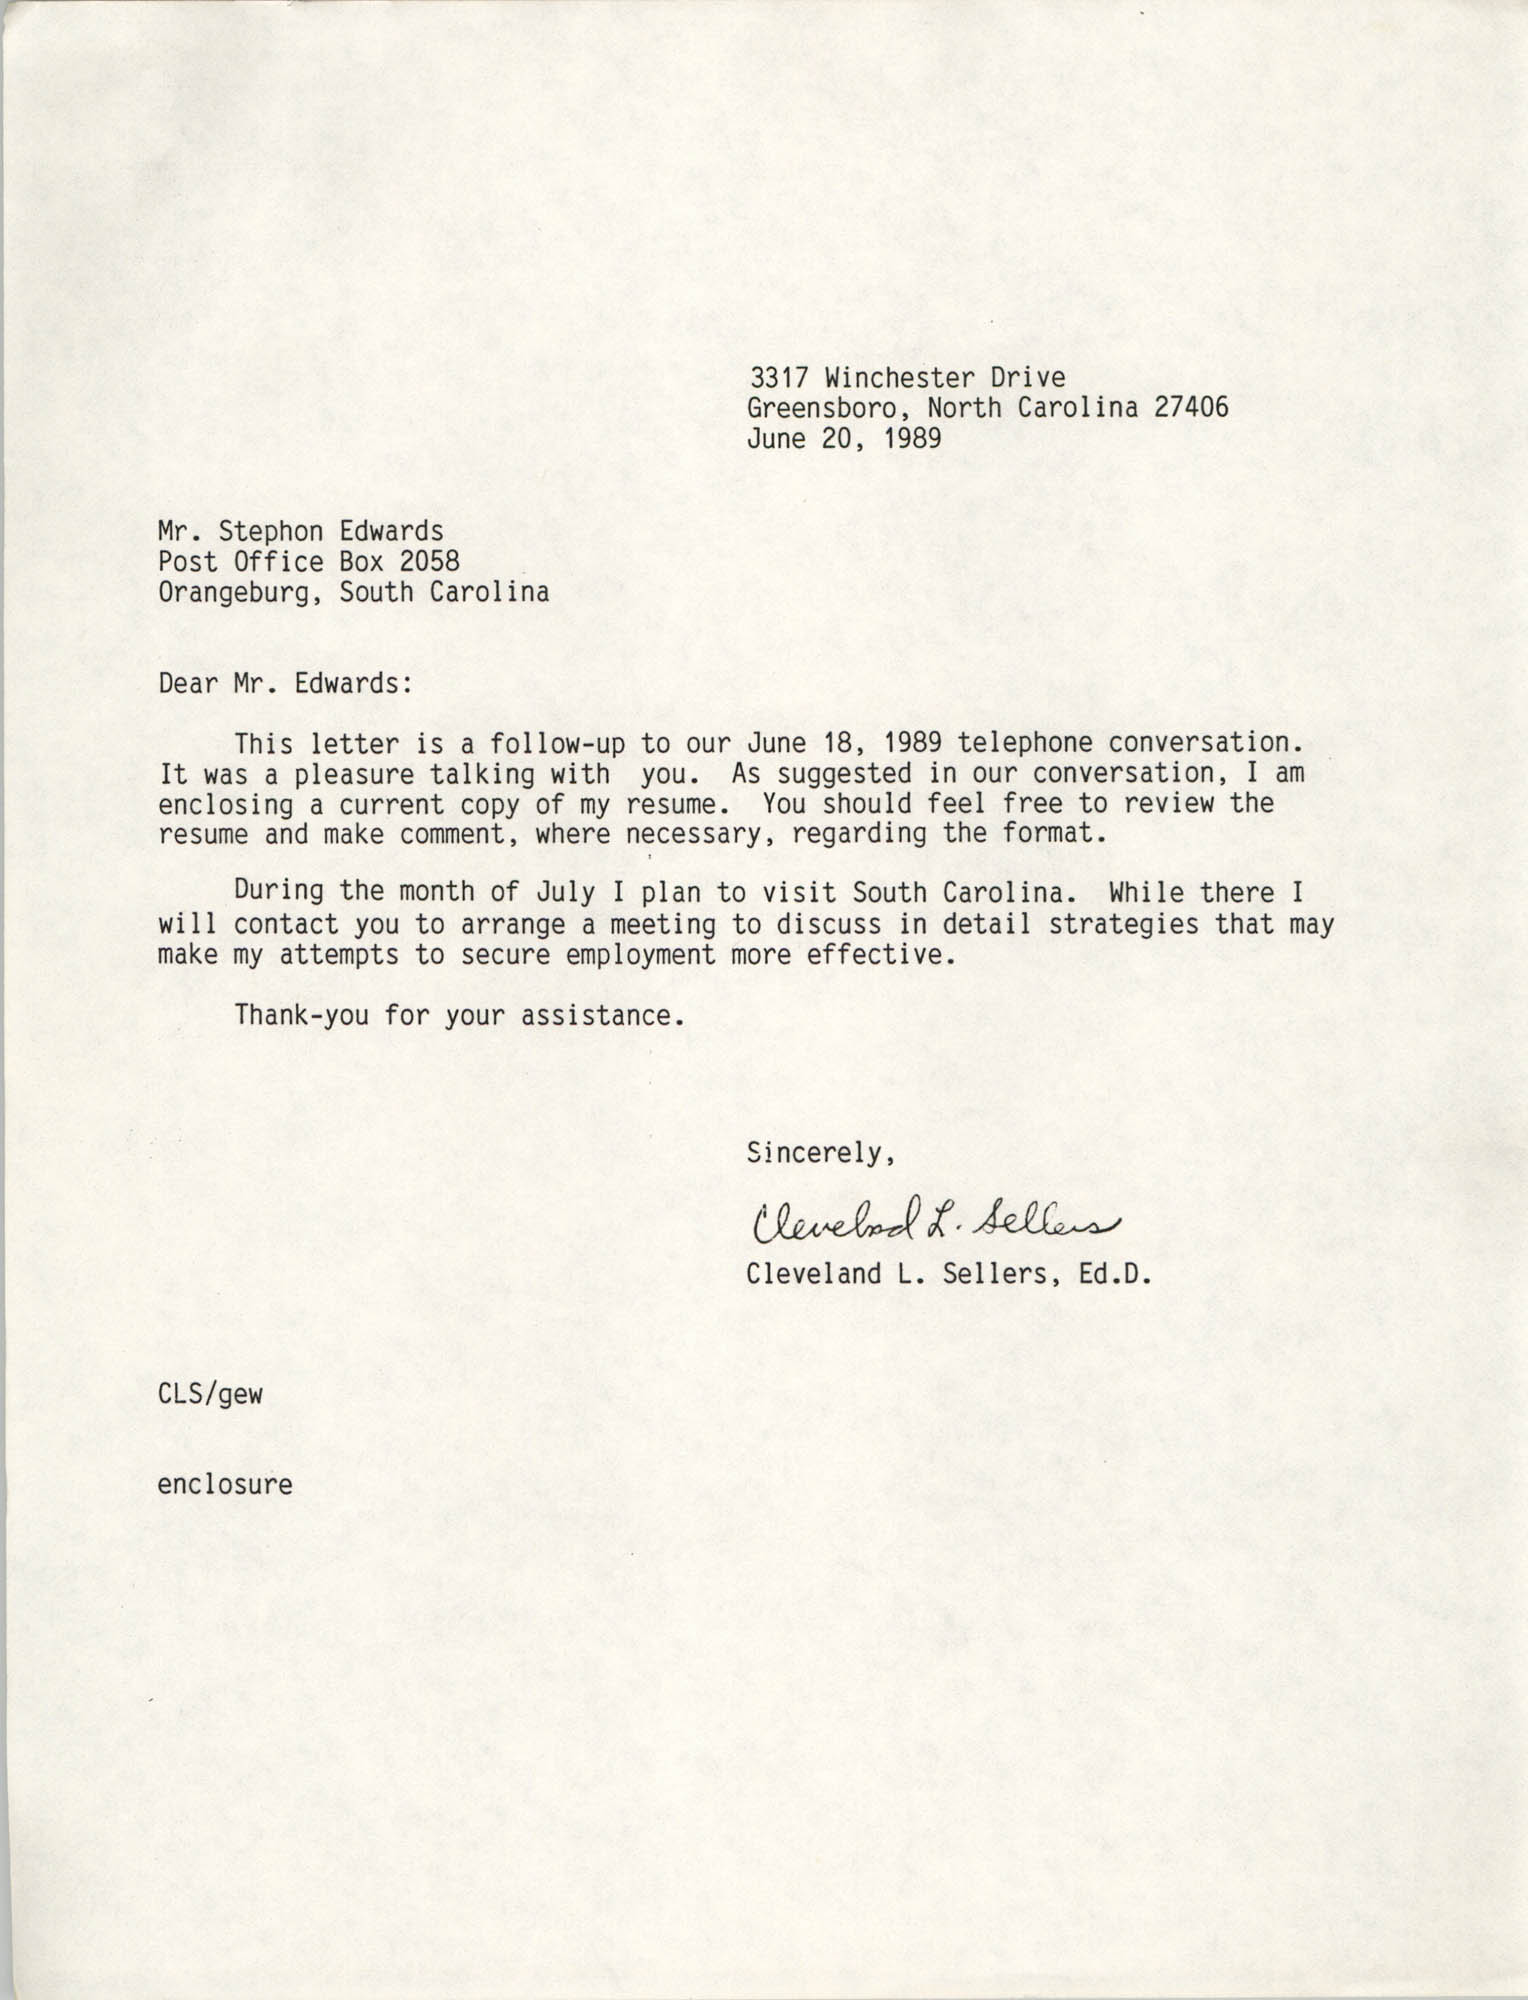 Letter from Cleveland Sellers to Stephon Edwards, June 20, 1989